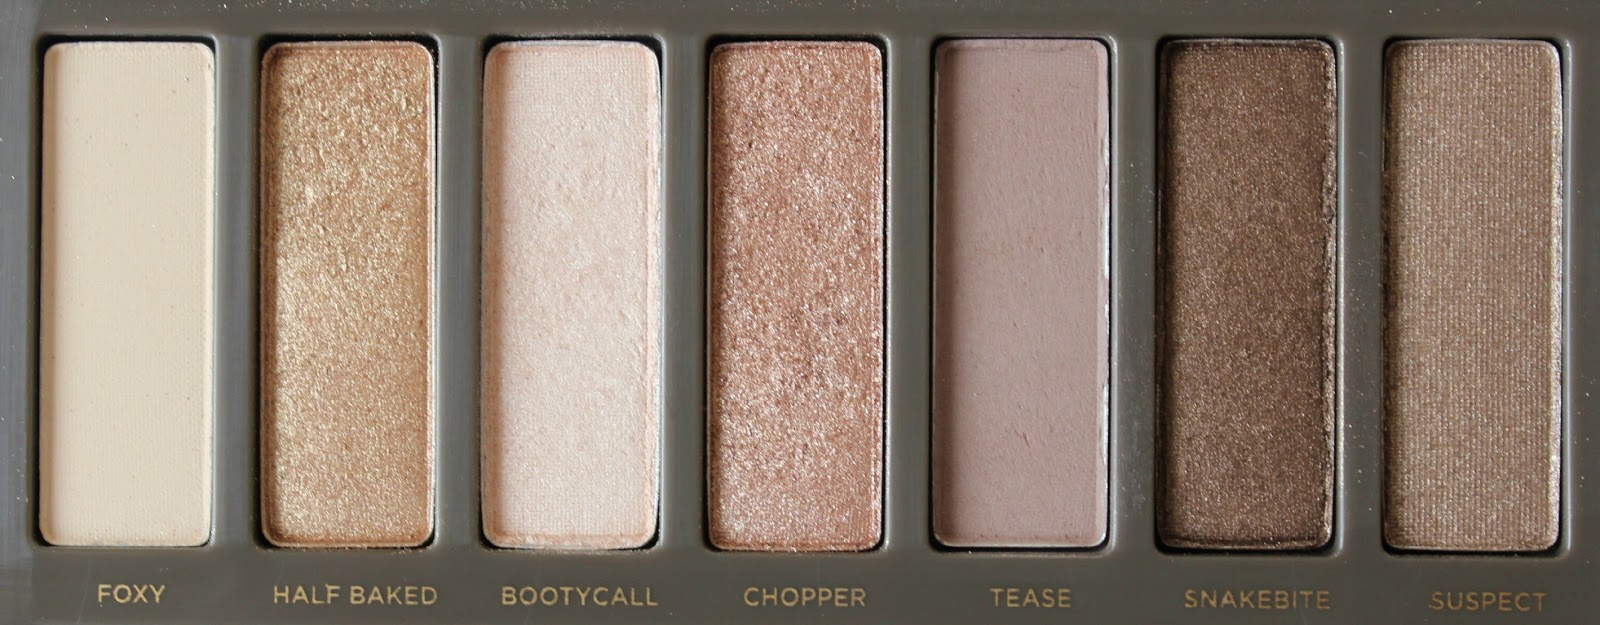 A picture of the Urban Decay Naked 2 Palette